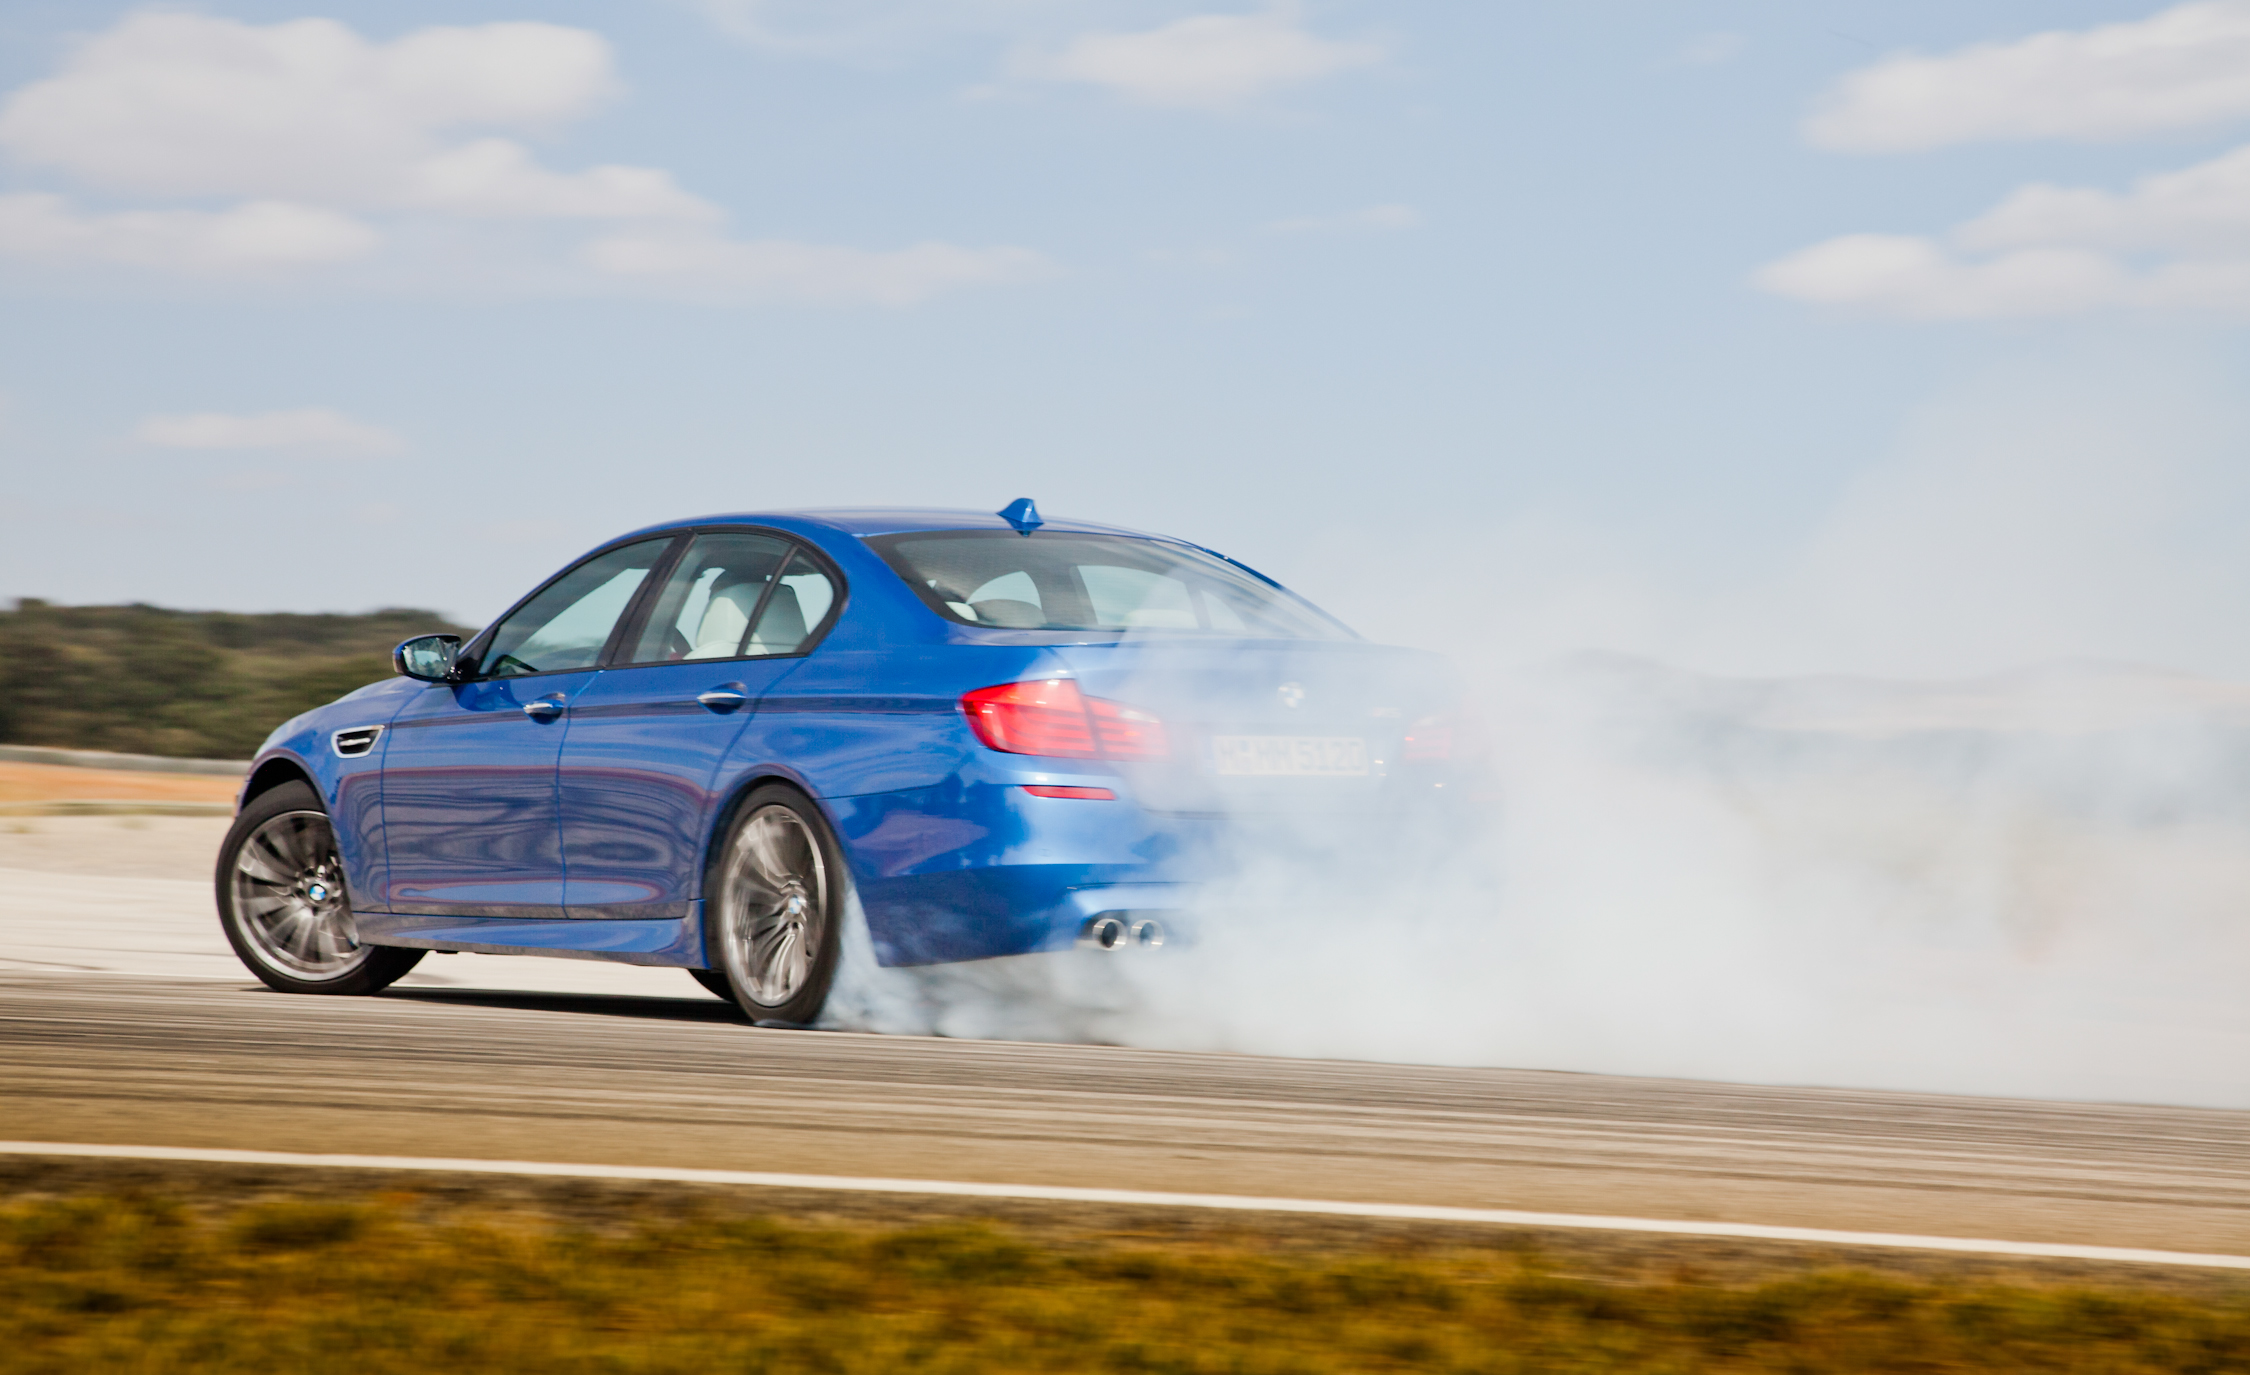 2013 BMW M5 Test Drive Circuit (View 9 of 22)